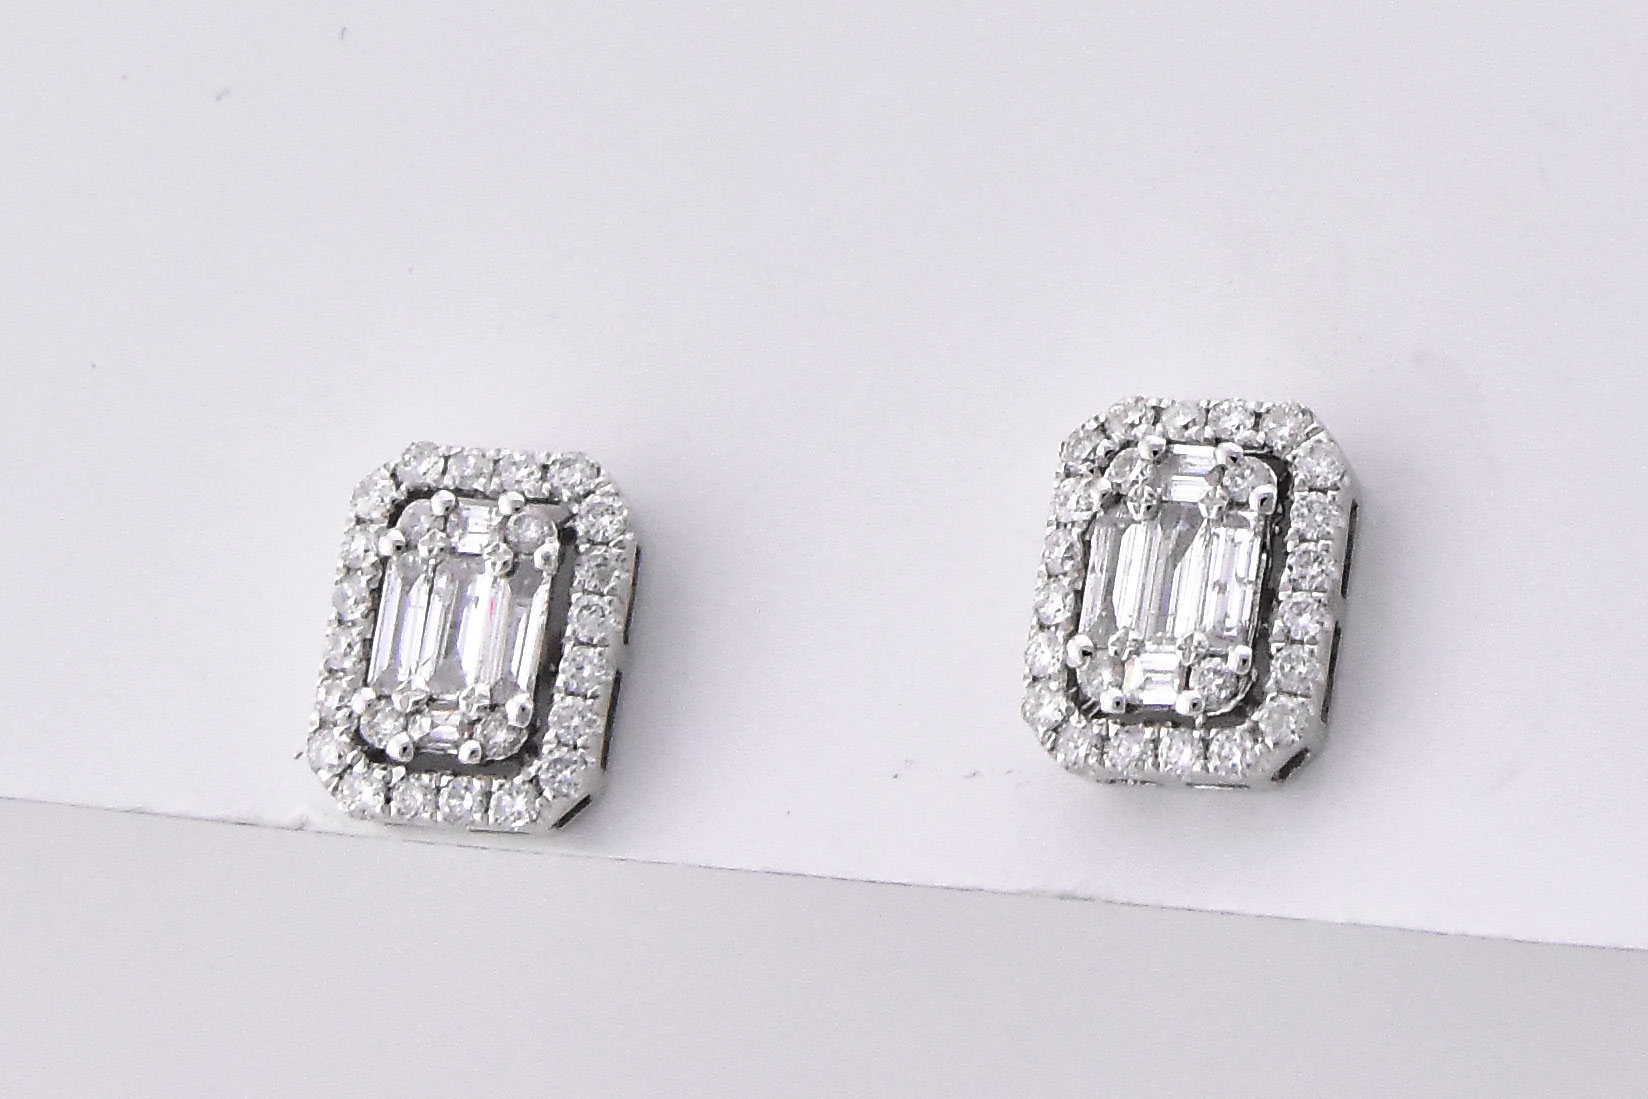 Half Carats Total Weight Diamond Earrings